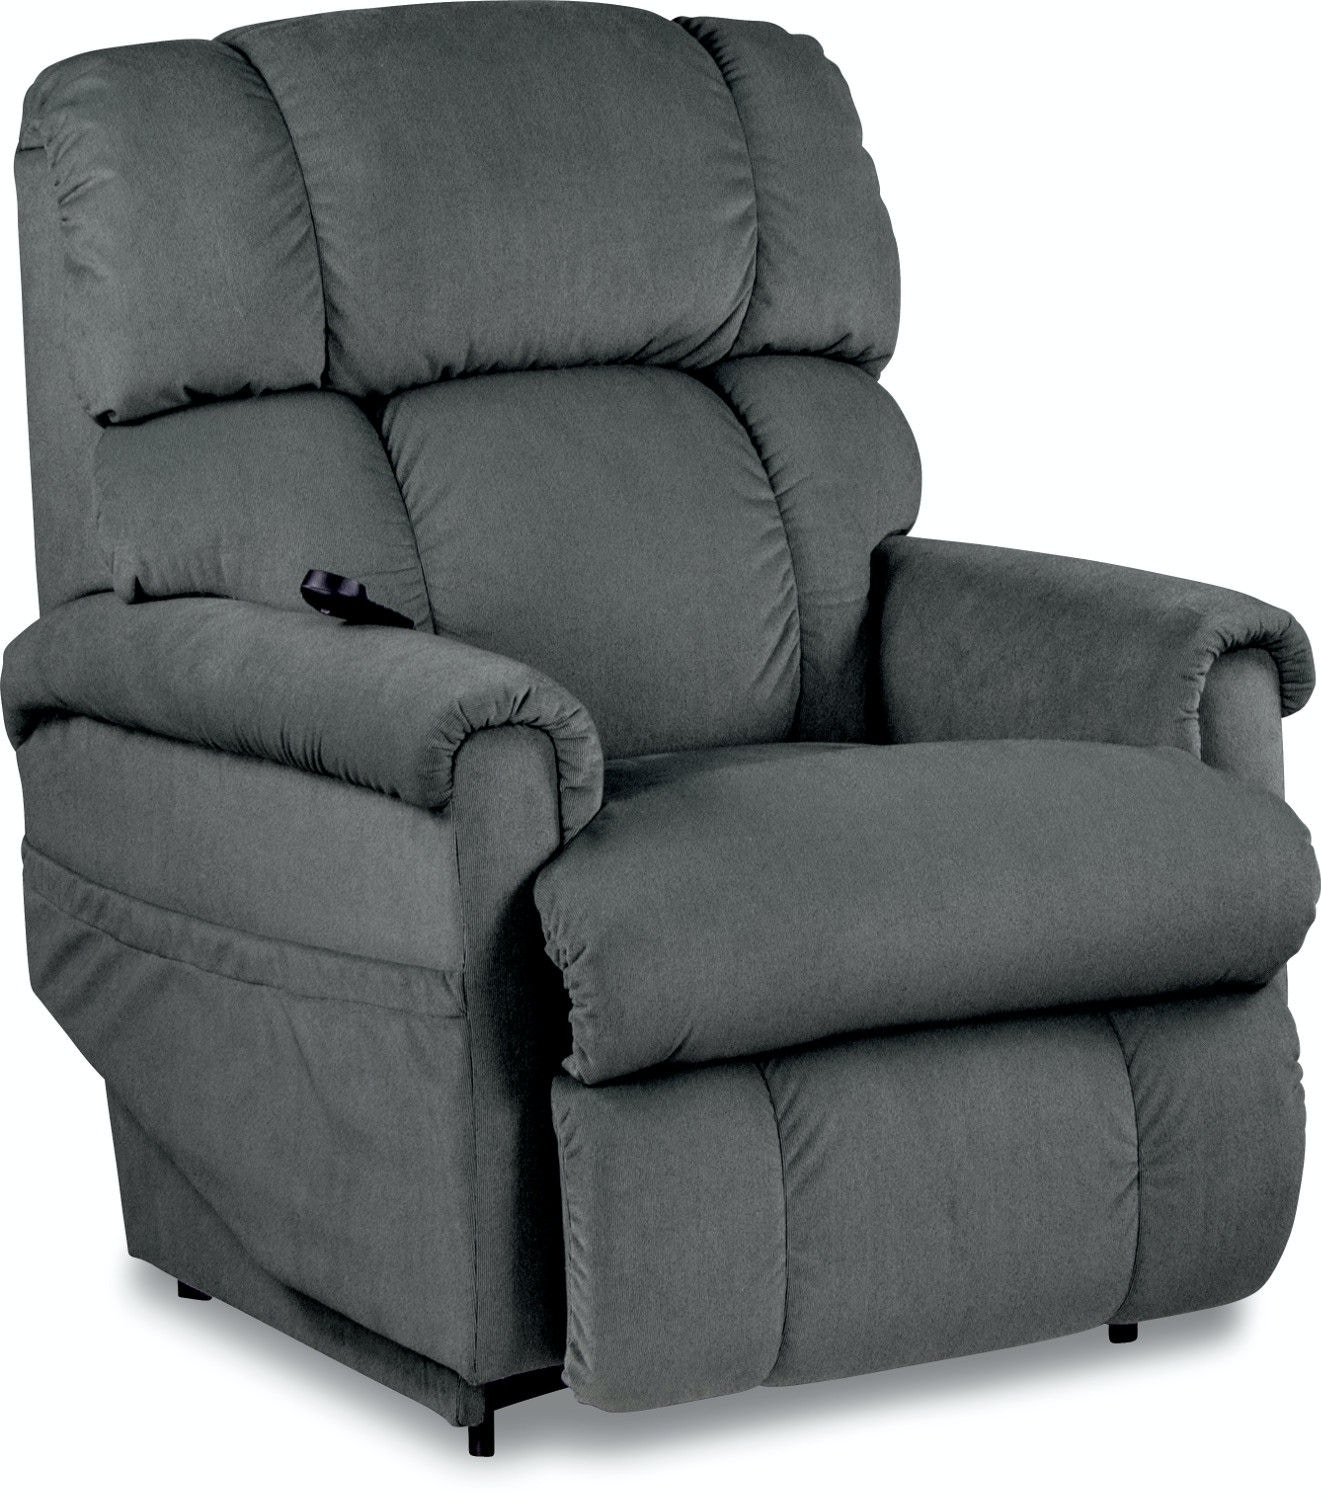 la z boy lift chair hand control lazy with fridge and speakers living room platinum luxury power recline xr